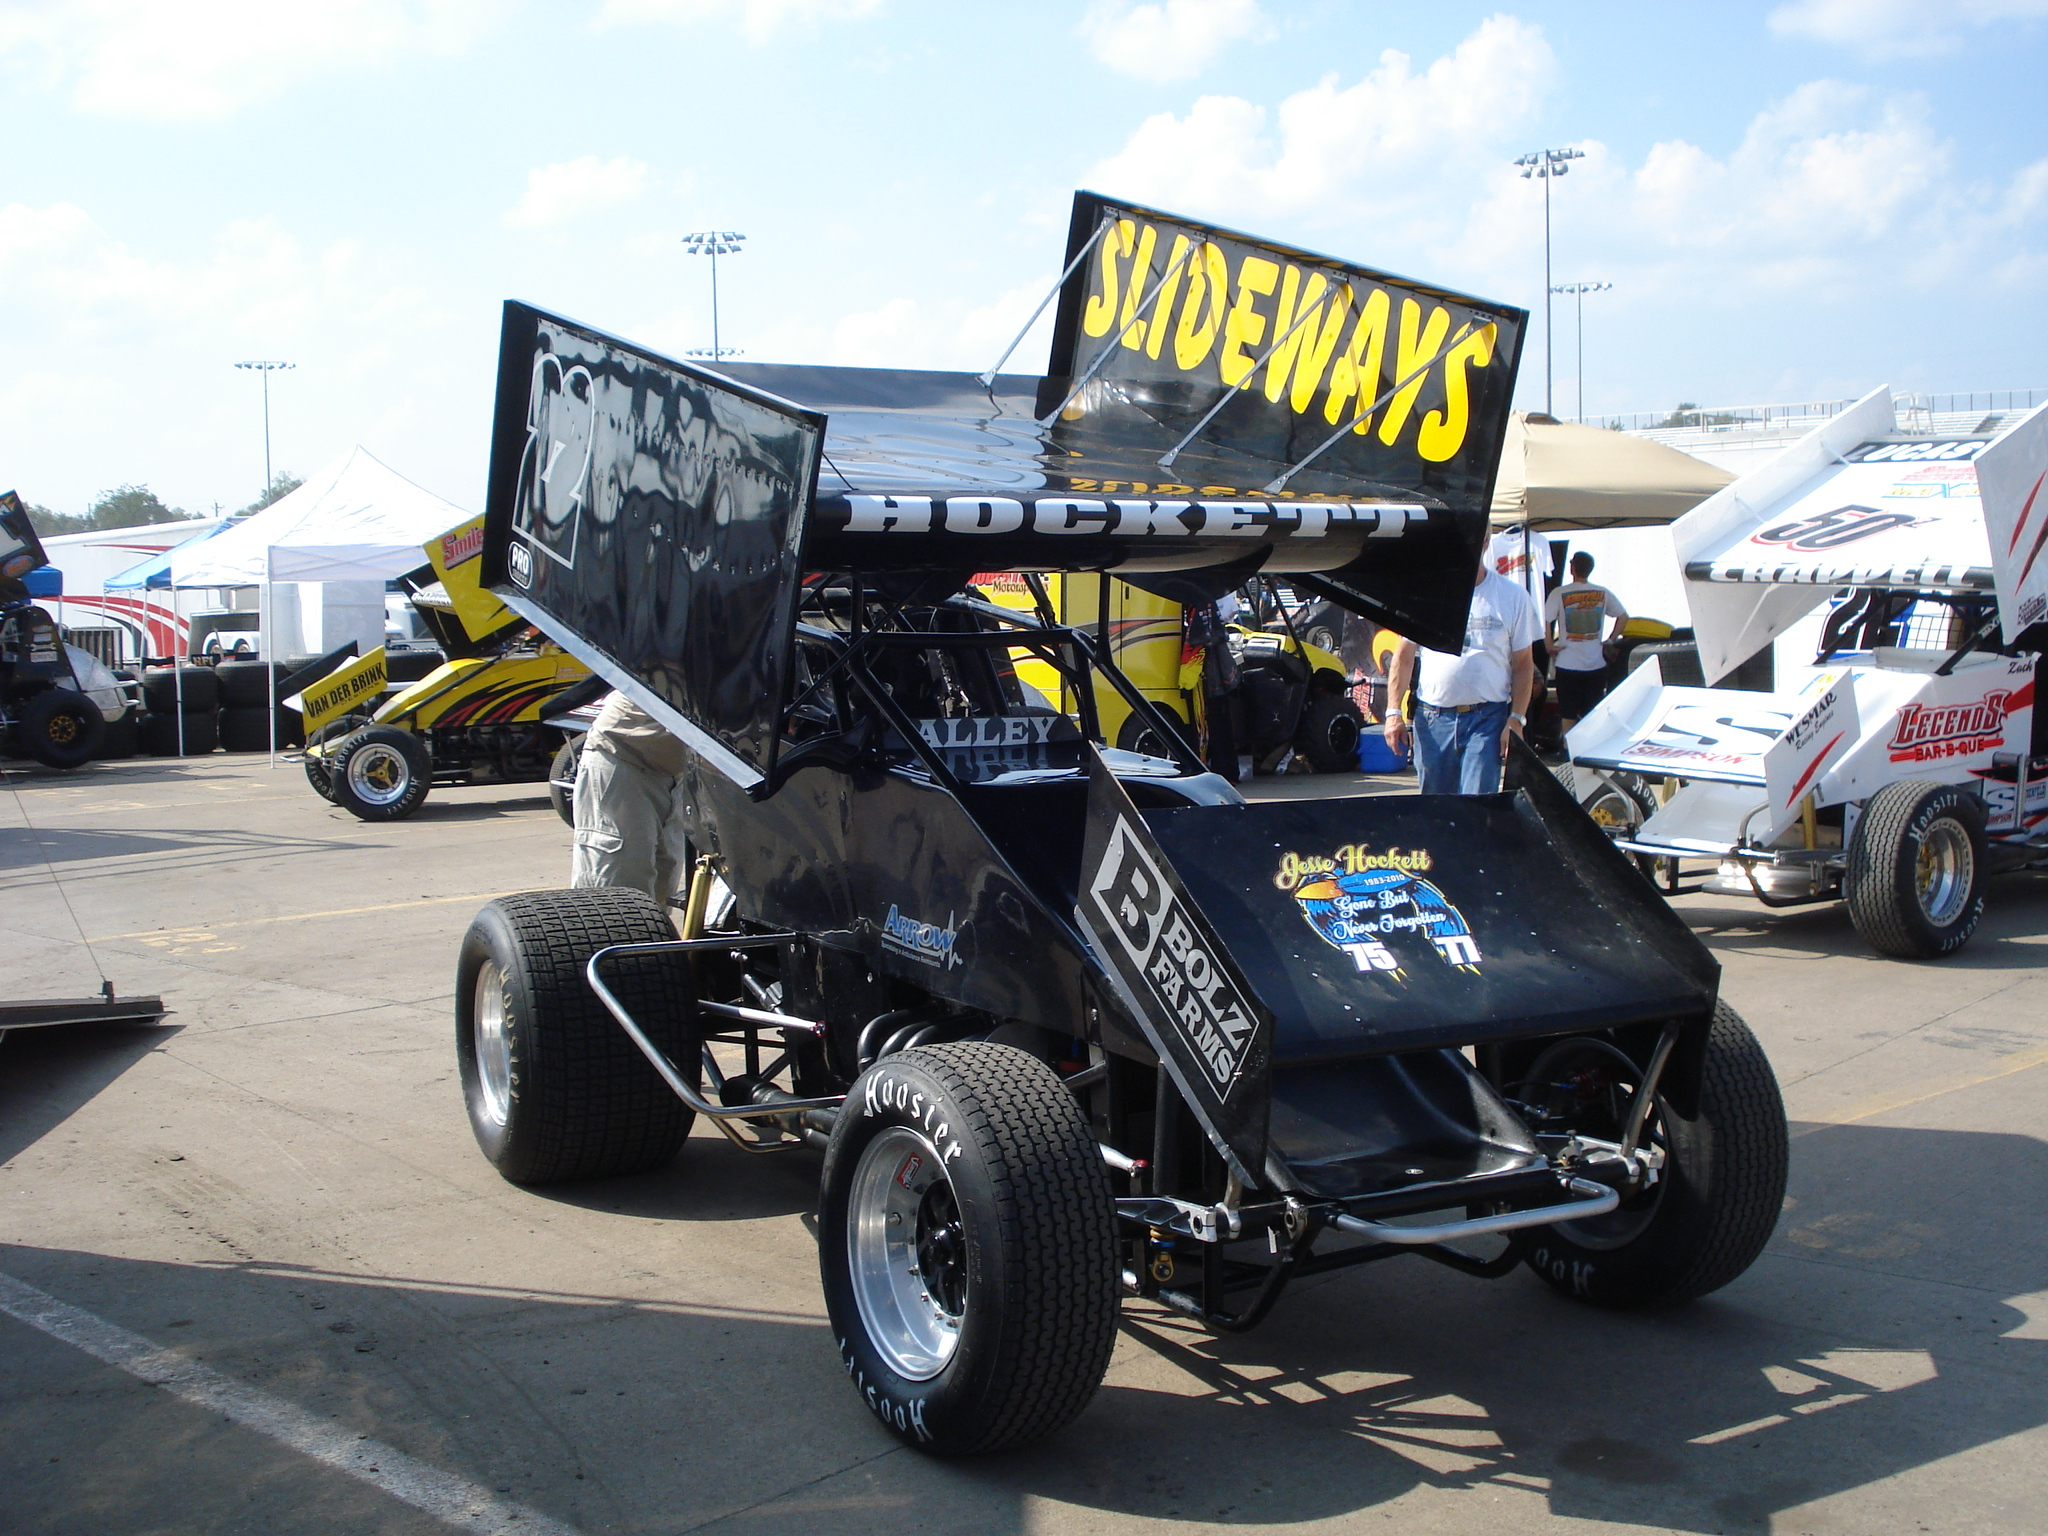 20th annual 360 knoxville nationals photo page 235 for Scott motors knoxville tn